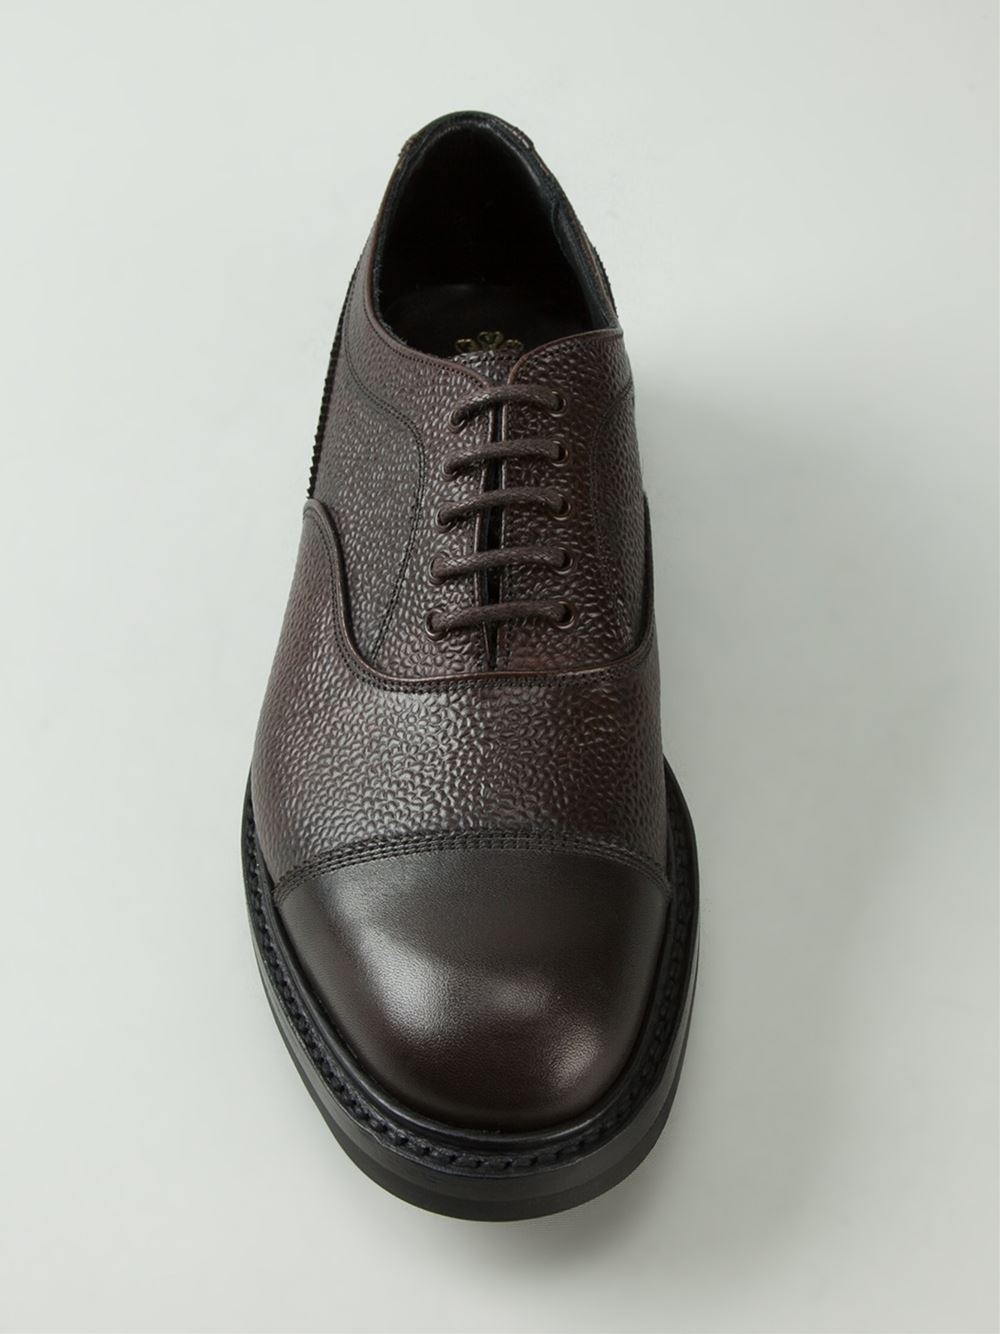 Dunlop Oxford Shoes - Black Trickers 1ziJDdWp7i